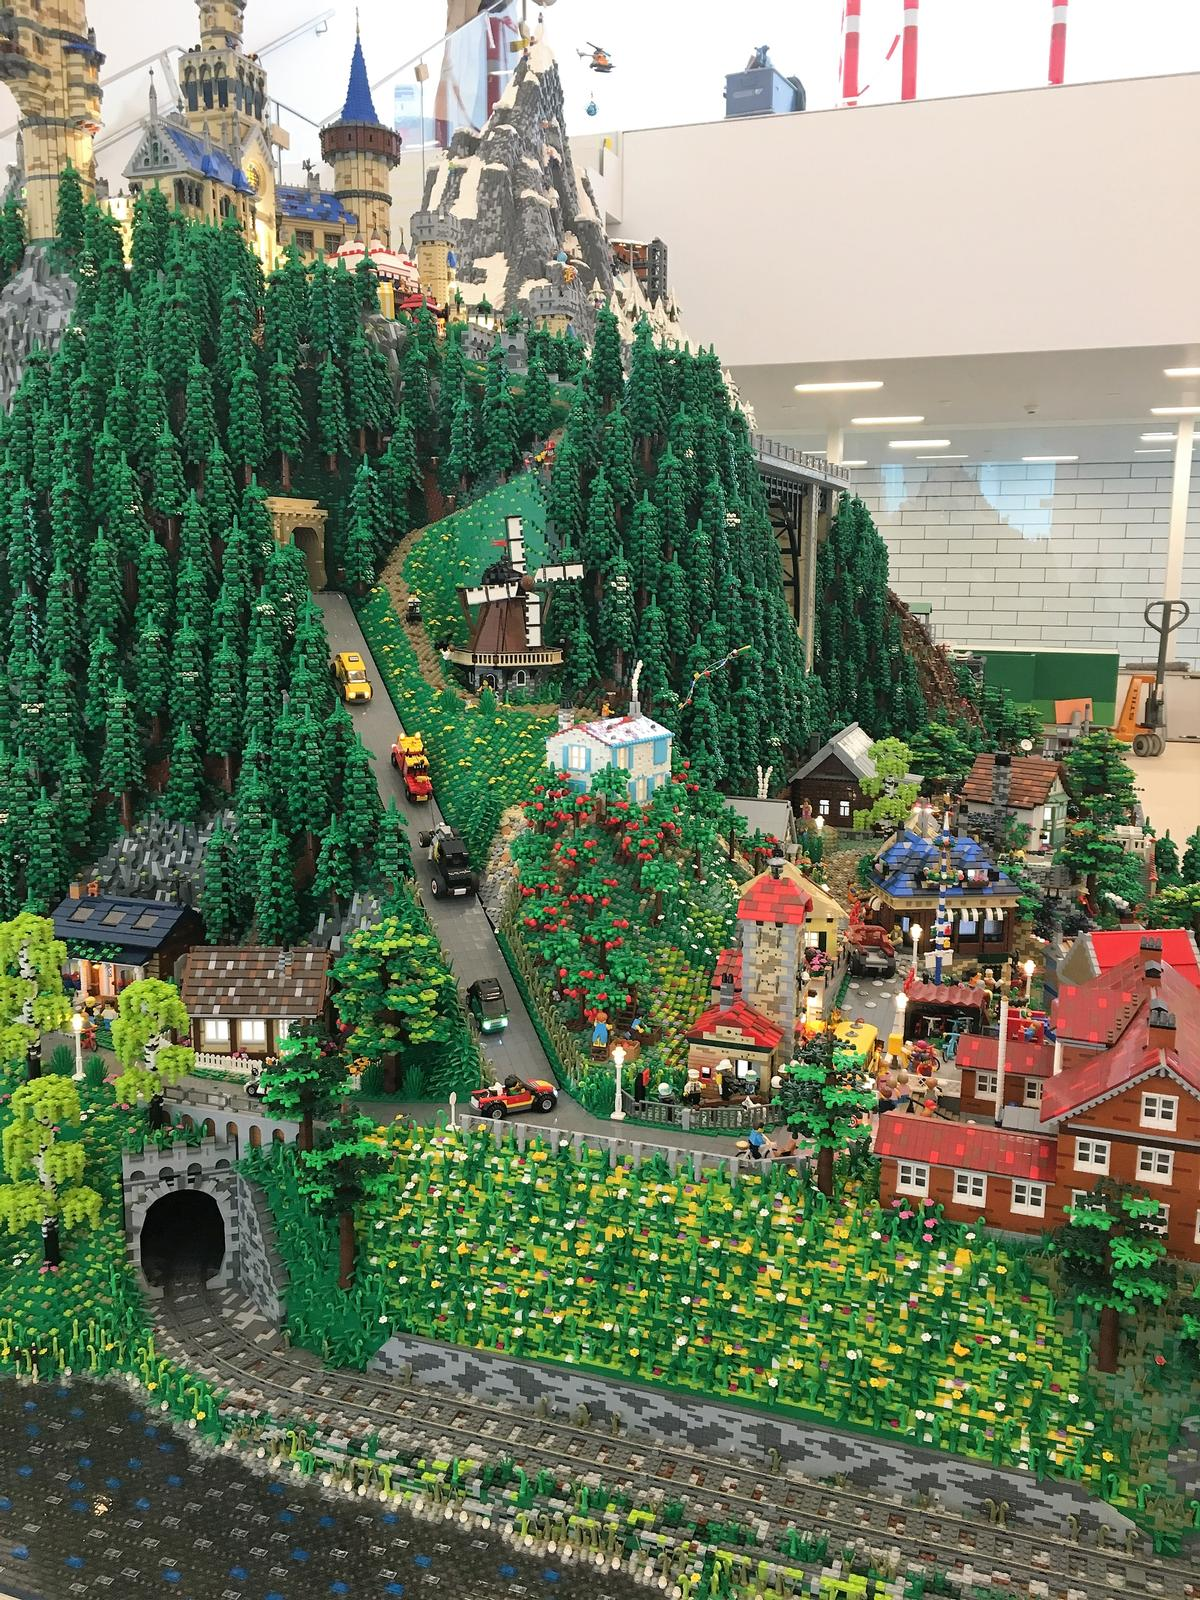 Lego House A Giant Playhouse Dubbed The Home Of The Brick Is Now